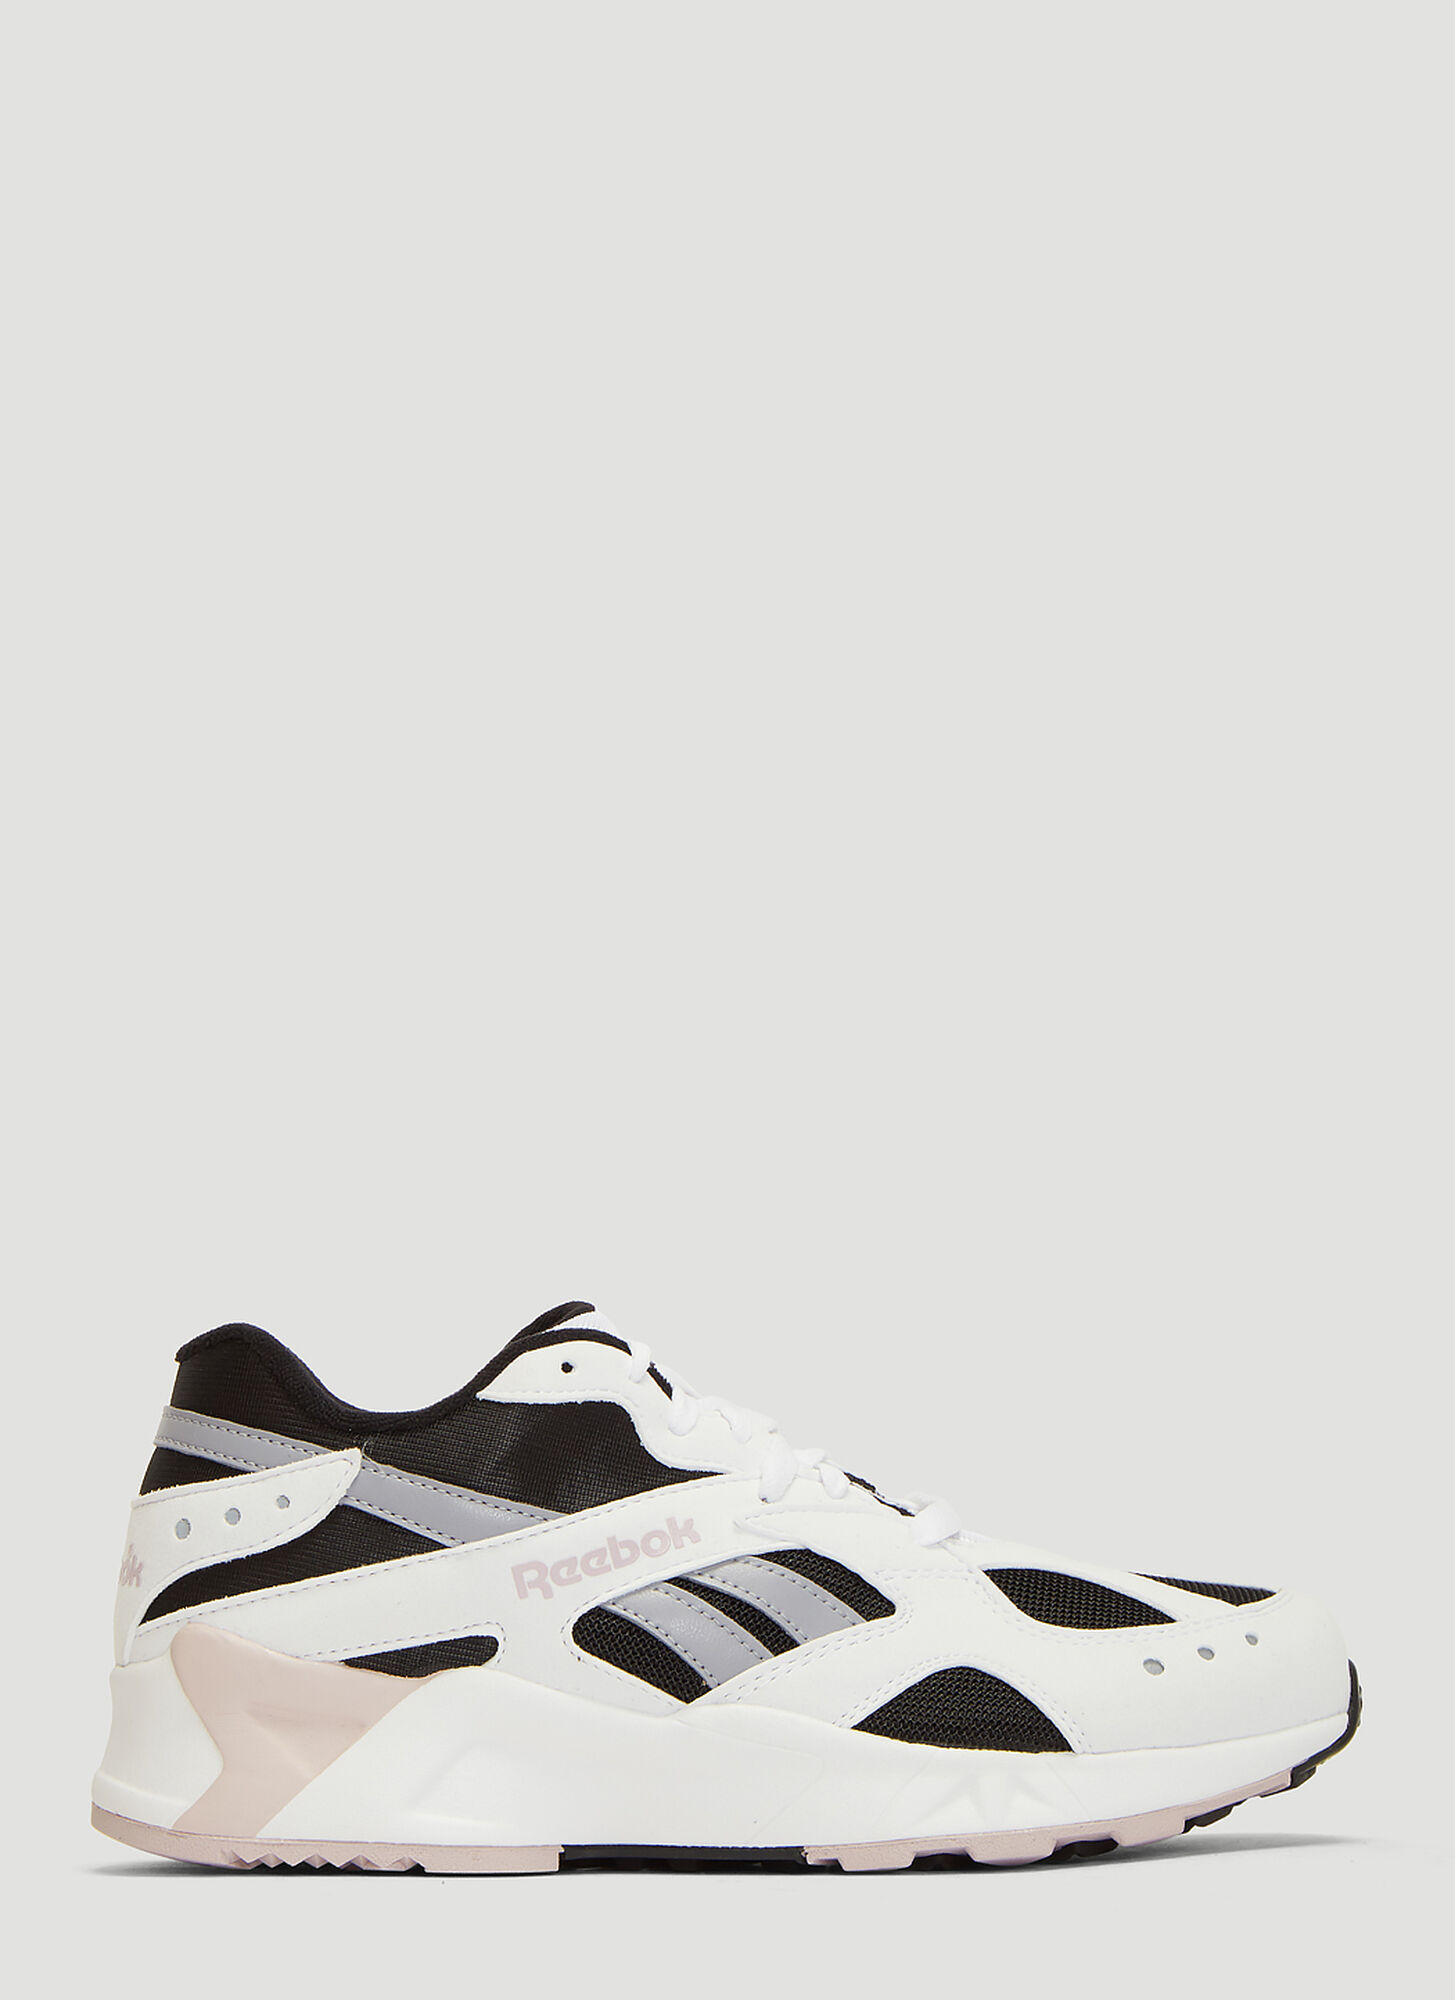 Reebok Aztrek Sneakers in White